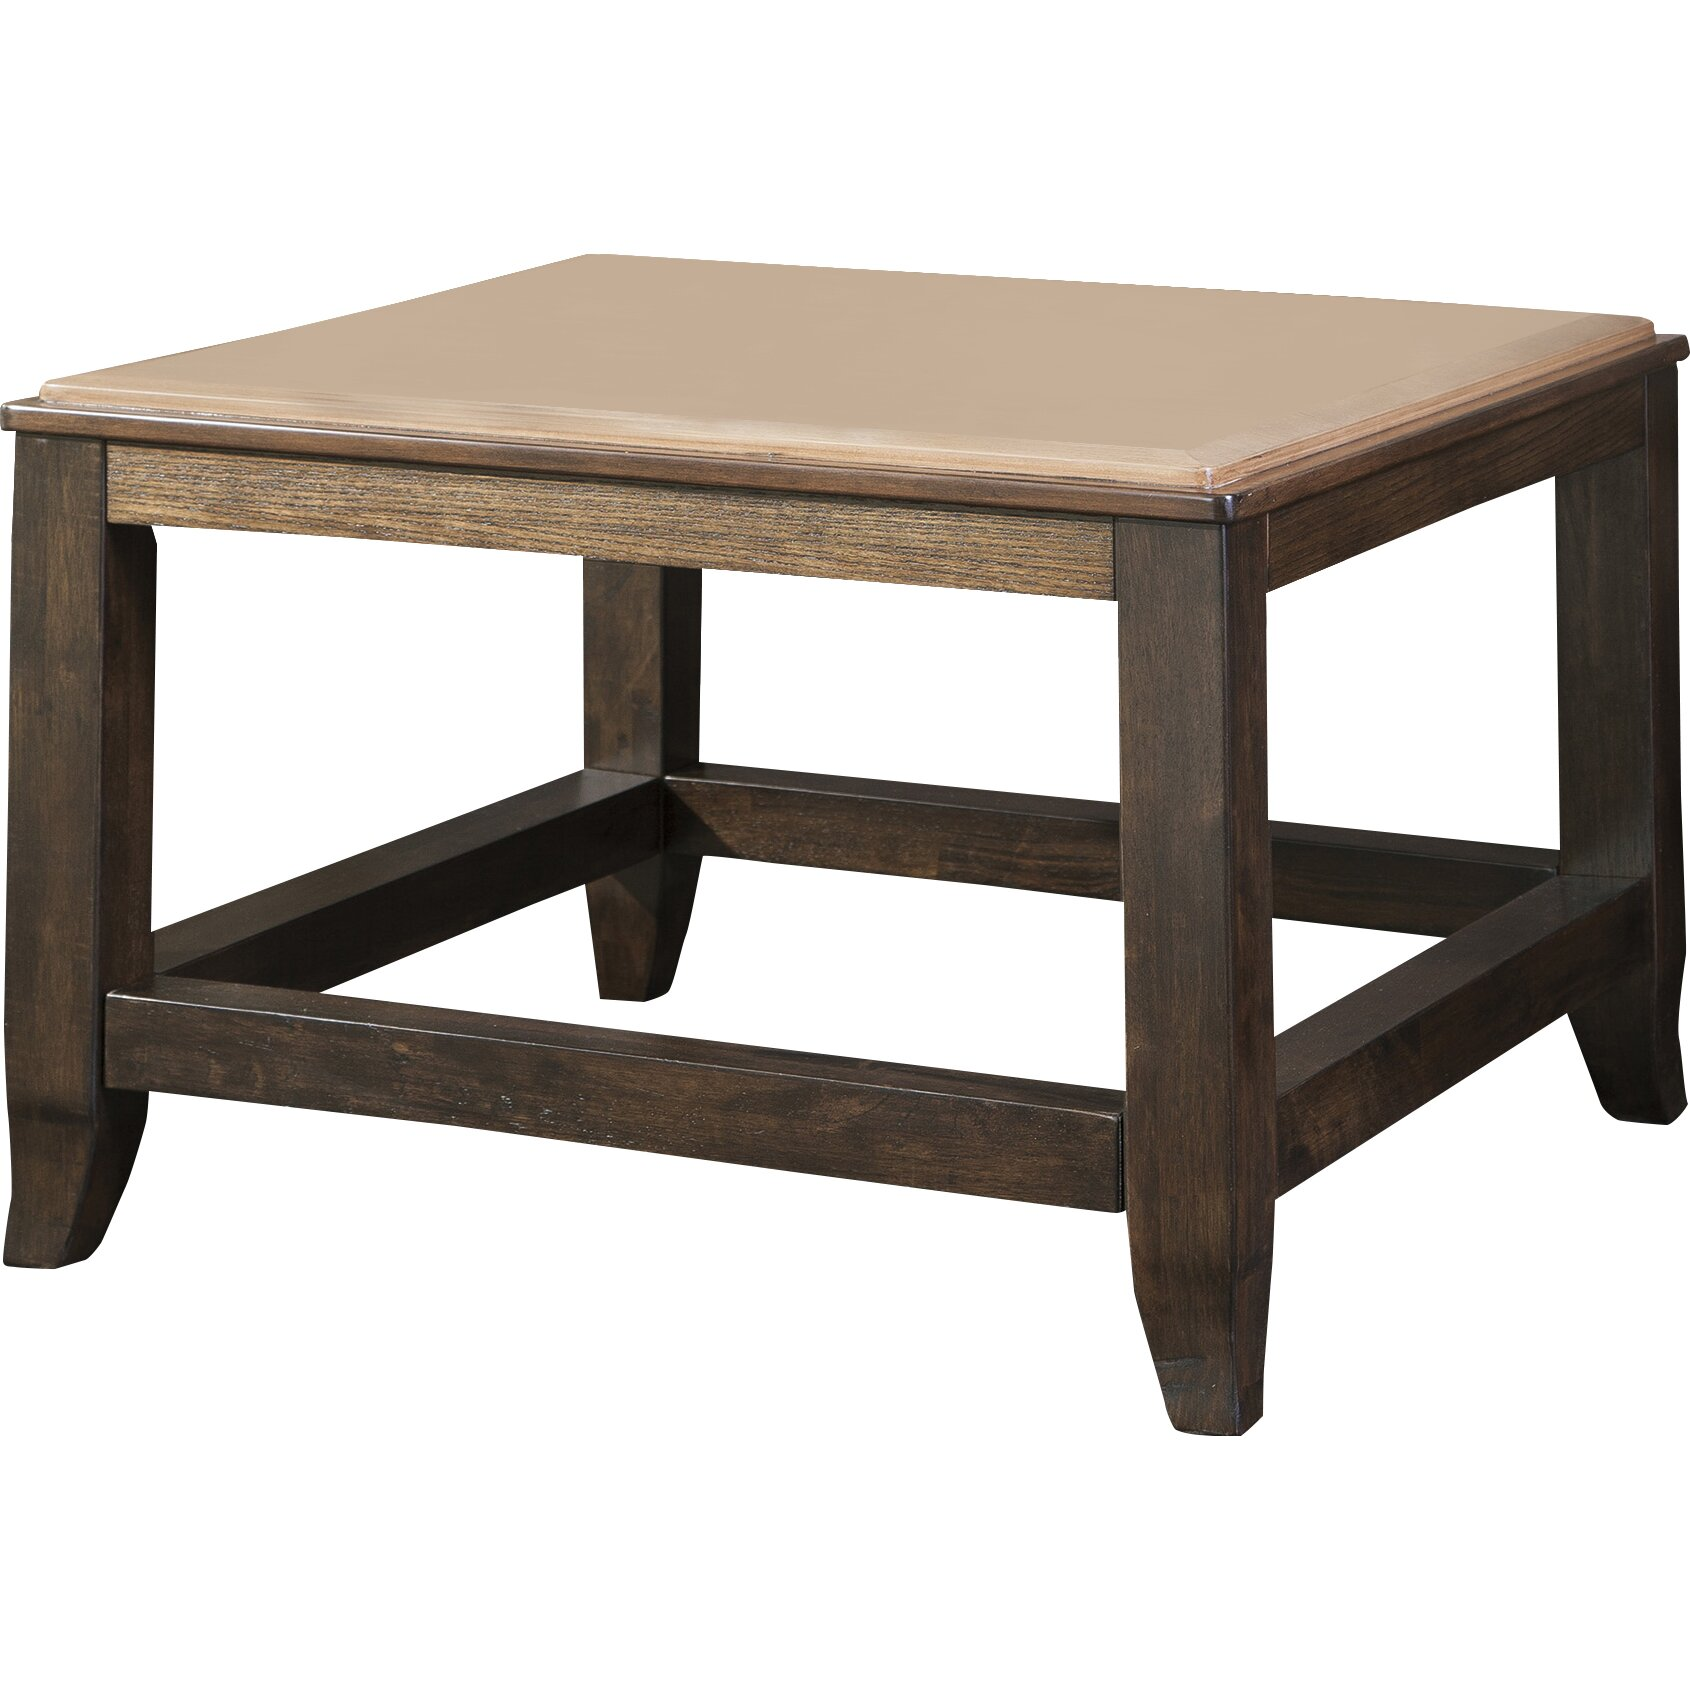 Signature Designs By Ashley Rollins Square End Table: Signature Design By Ashley Mandoro Coffee Table & Reviews